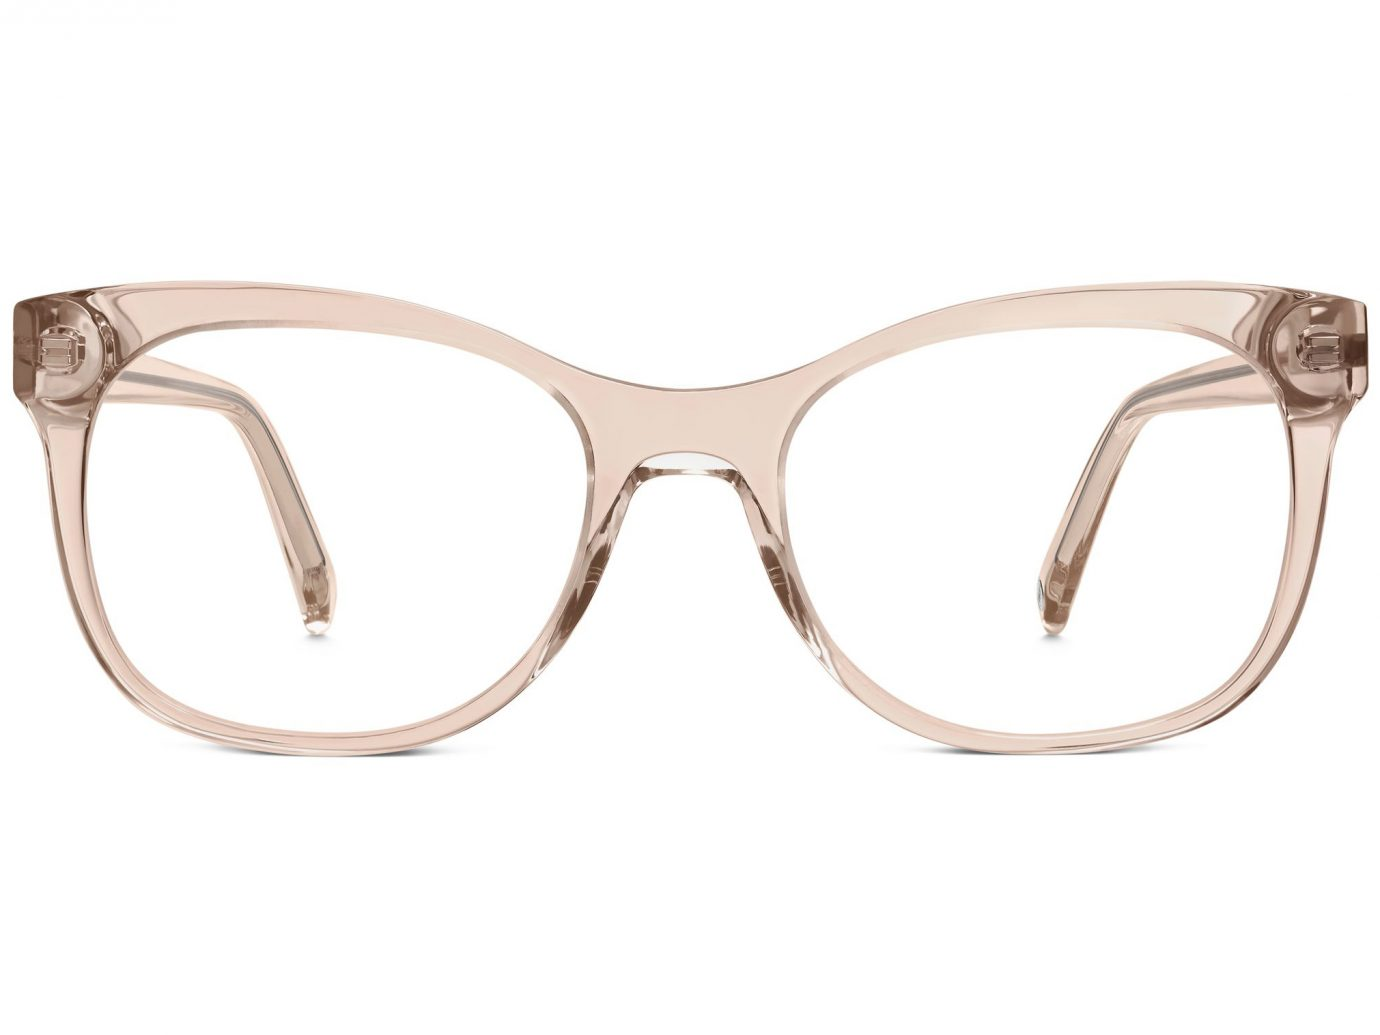 Lucy Warby Parker